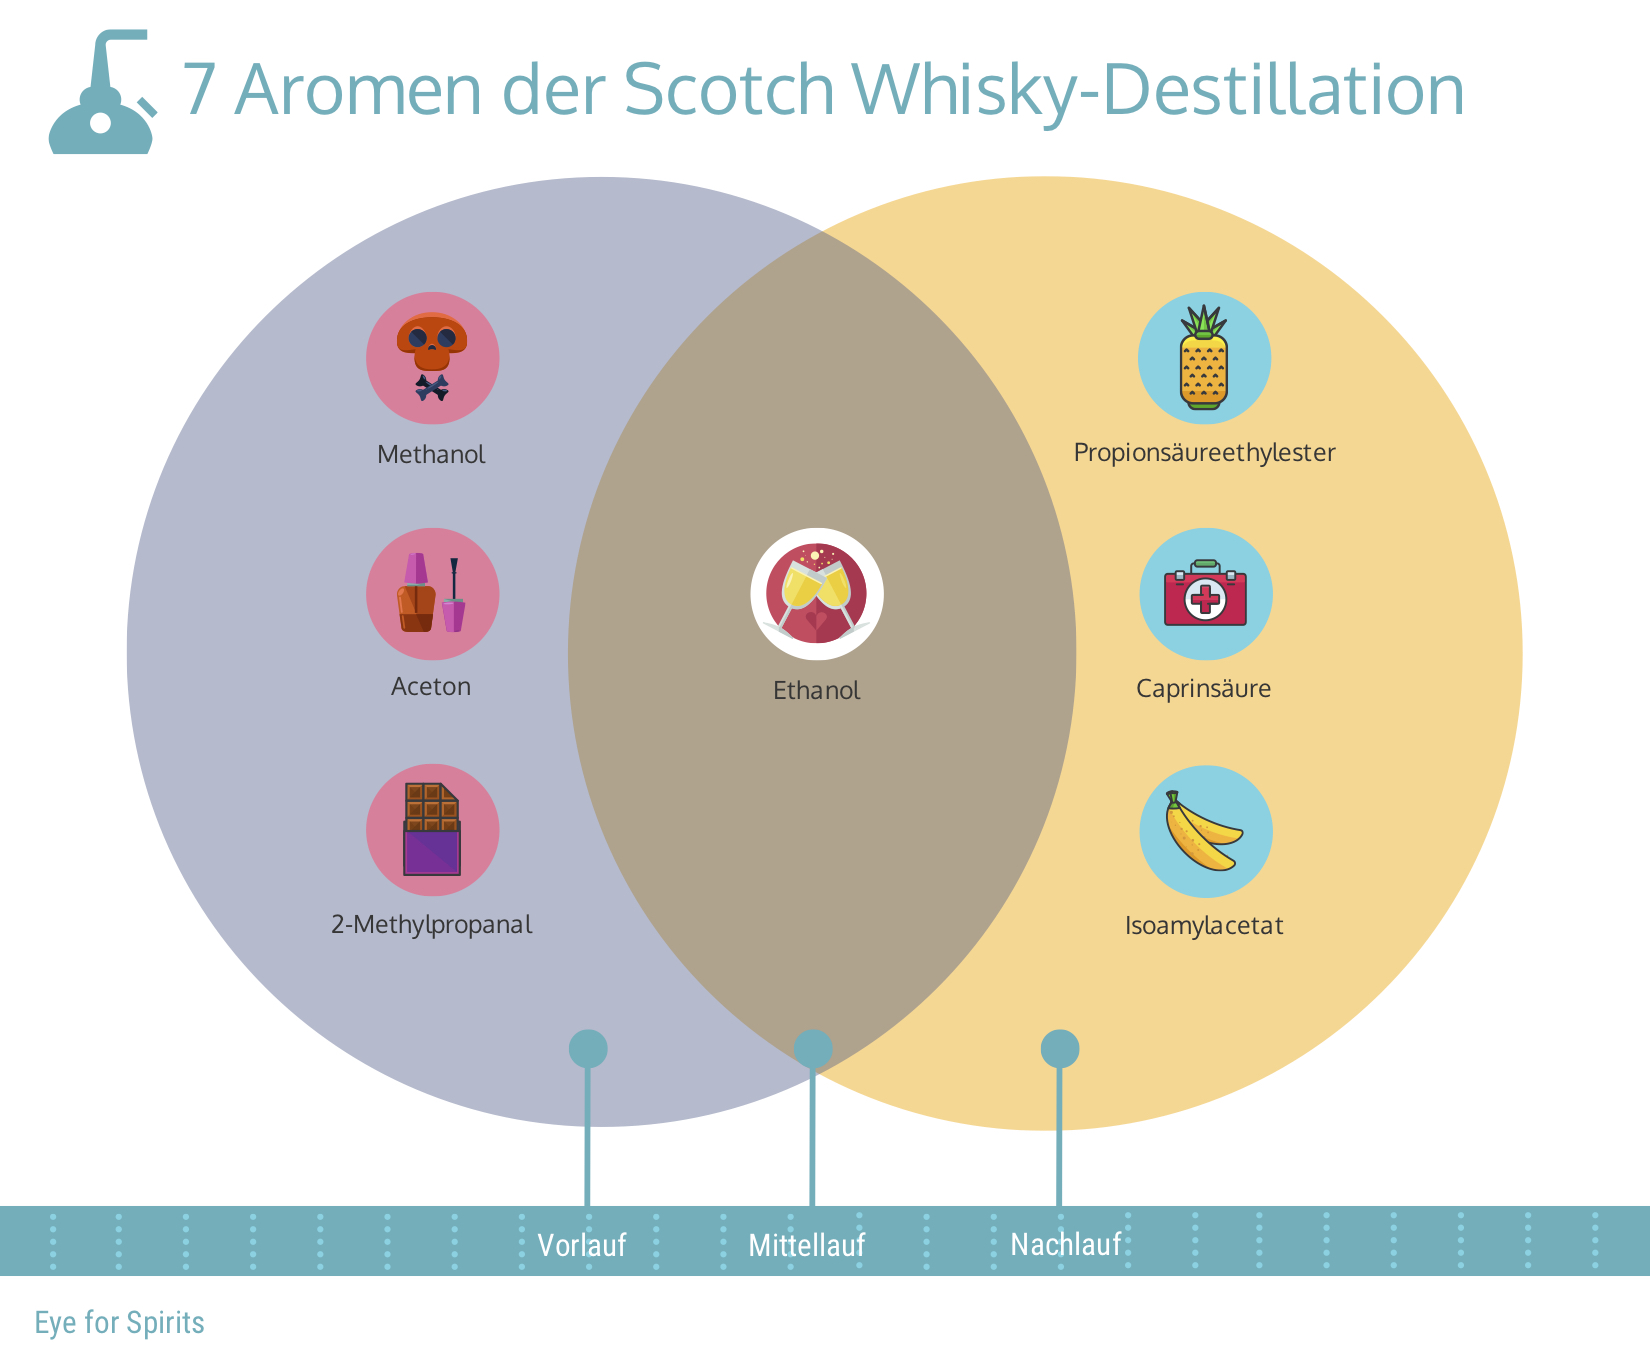 whisky-aromen-destillation